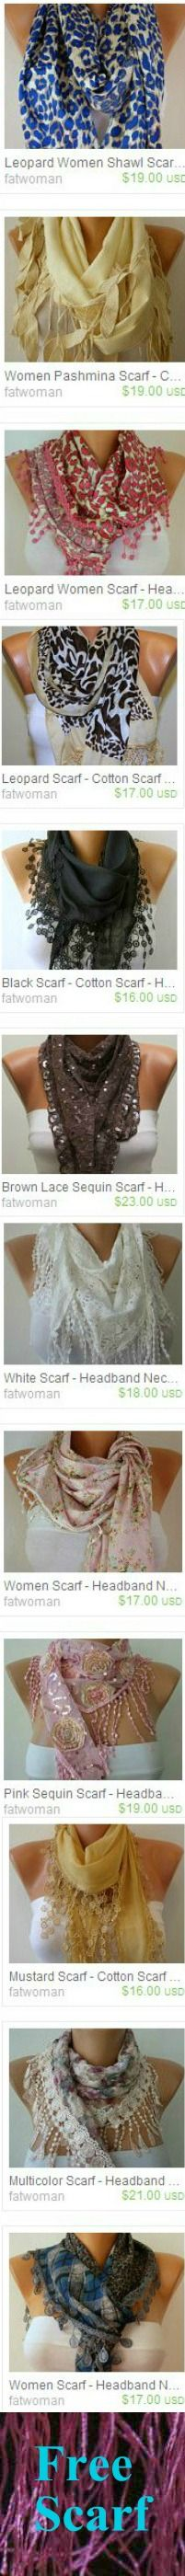 SCARF by Fatwoman on Etsy,  - $17.00